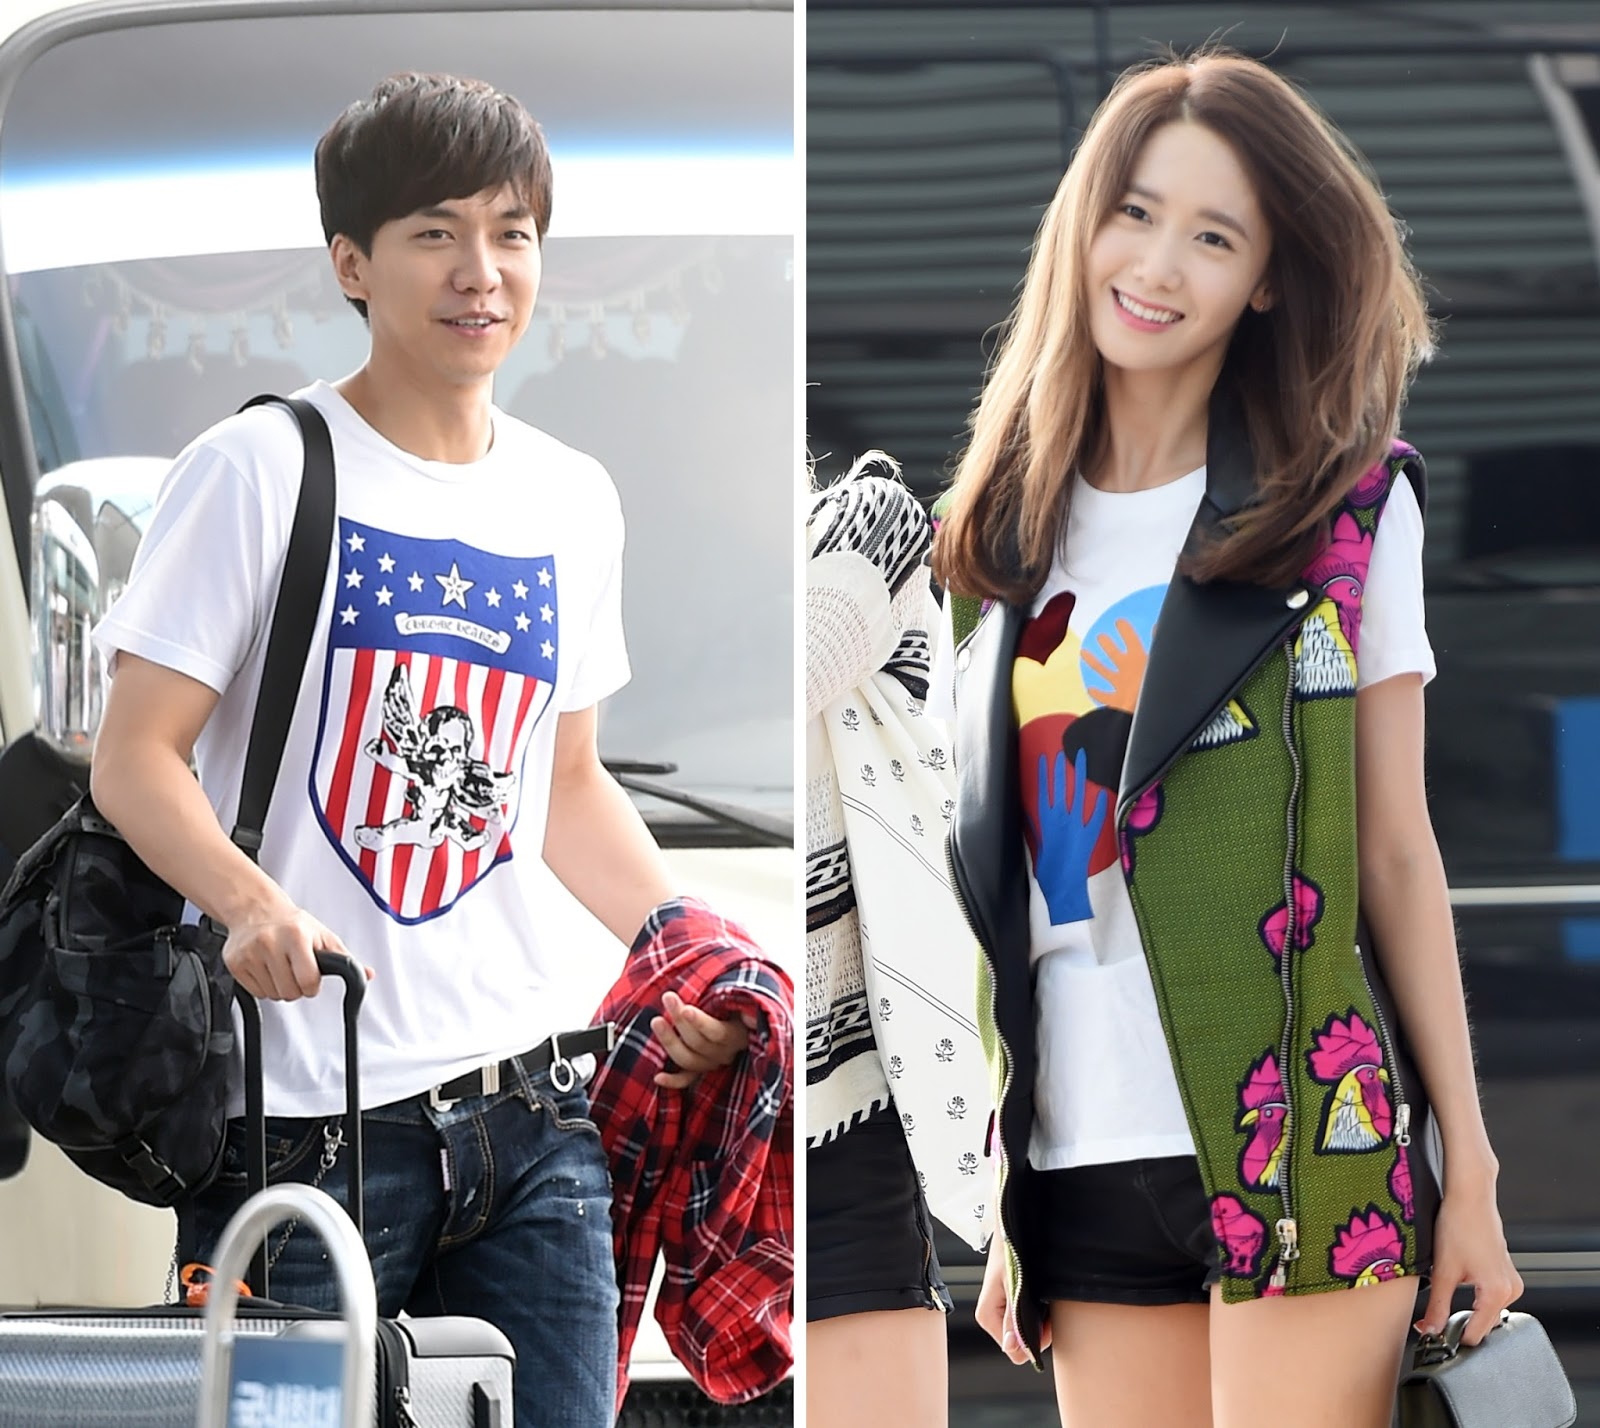 lee seung gi and yoona dating photo 2014 in k-entertainment is starting off with a bang with a new celebrity couple, lee seung gi and girls' generation's yoona news agency dispatch reported earlier that lee seung gi and yoona are dating, releasing photos and.